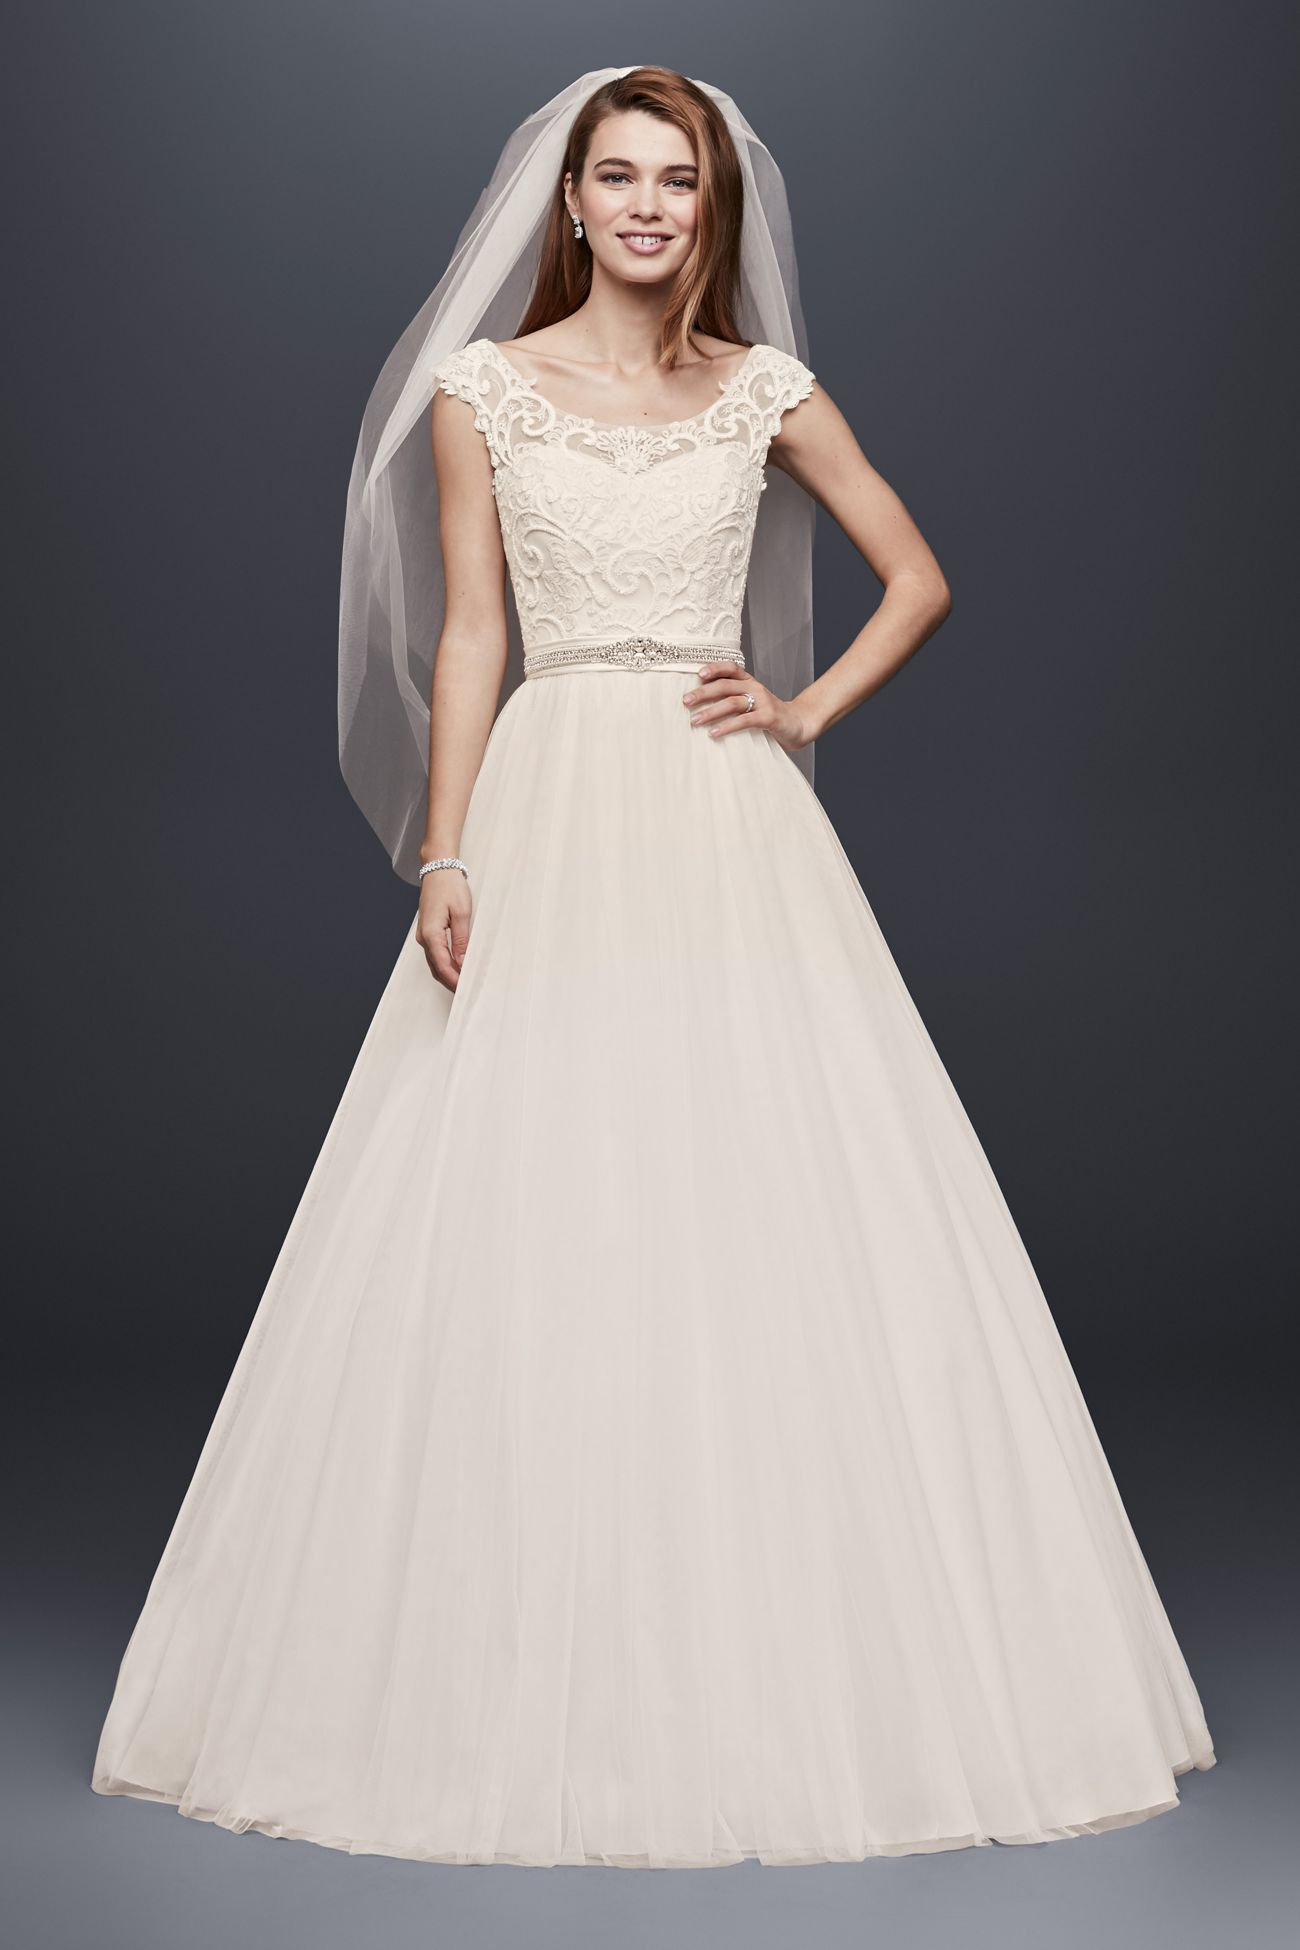 Petite Tulle Ball Gown With Lace Illusion Neckline David S Bridal Wedding Dress Necklines Petite Wedding Dress Davids Bridal Wedding Dresses